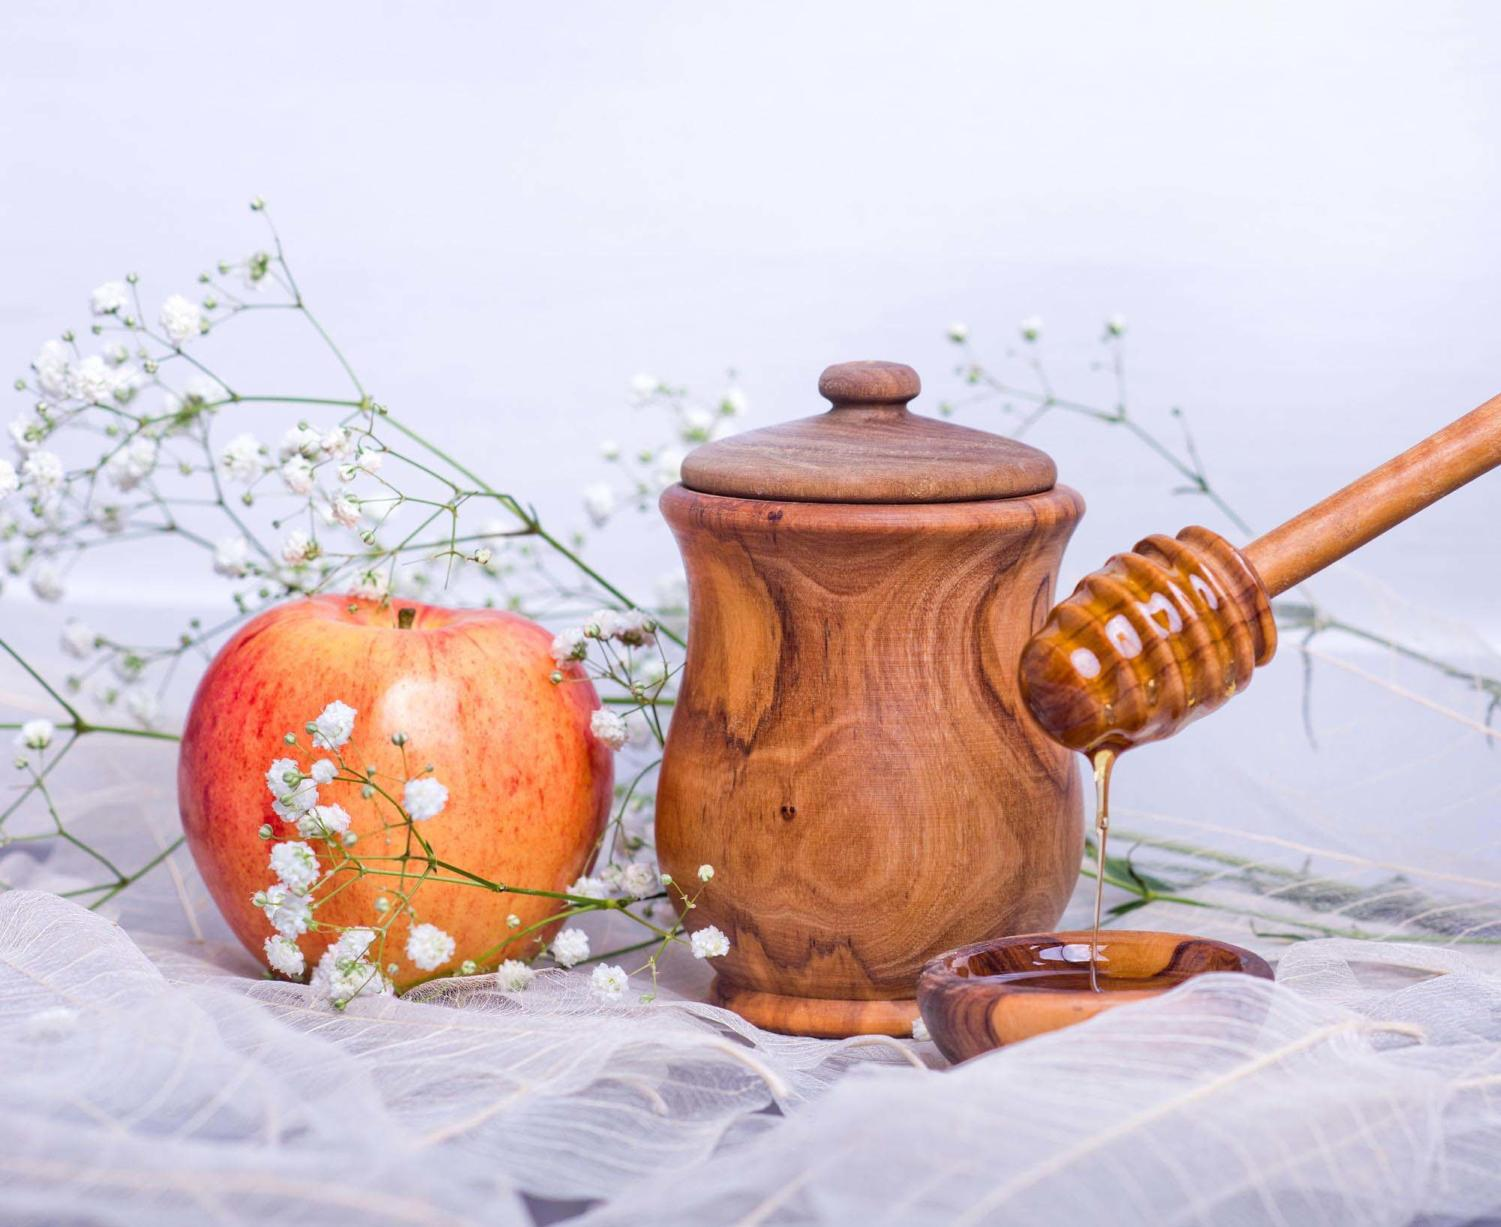 The Rosh Hashanah meal begins with the dipping of apple into honey and a special blessing for